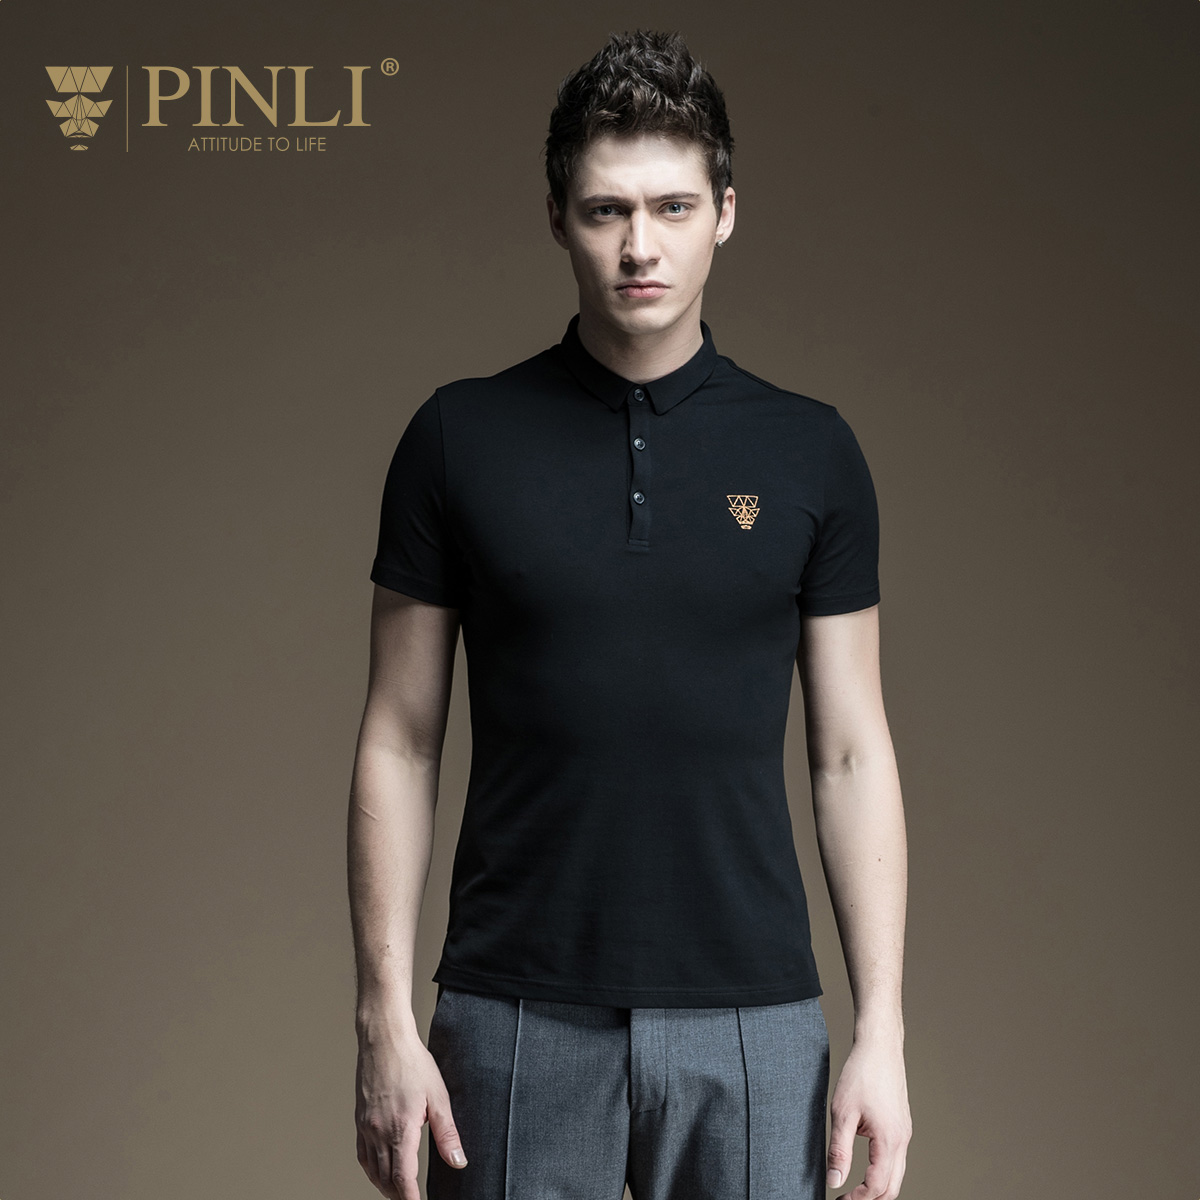 Men Top Fashion Pinli Product 2017 New Summer Men's Clothing Embroidery Short Sleeved Polo Shirt Male B172112187